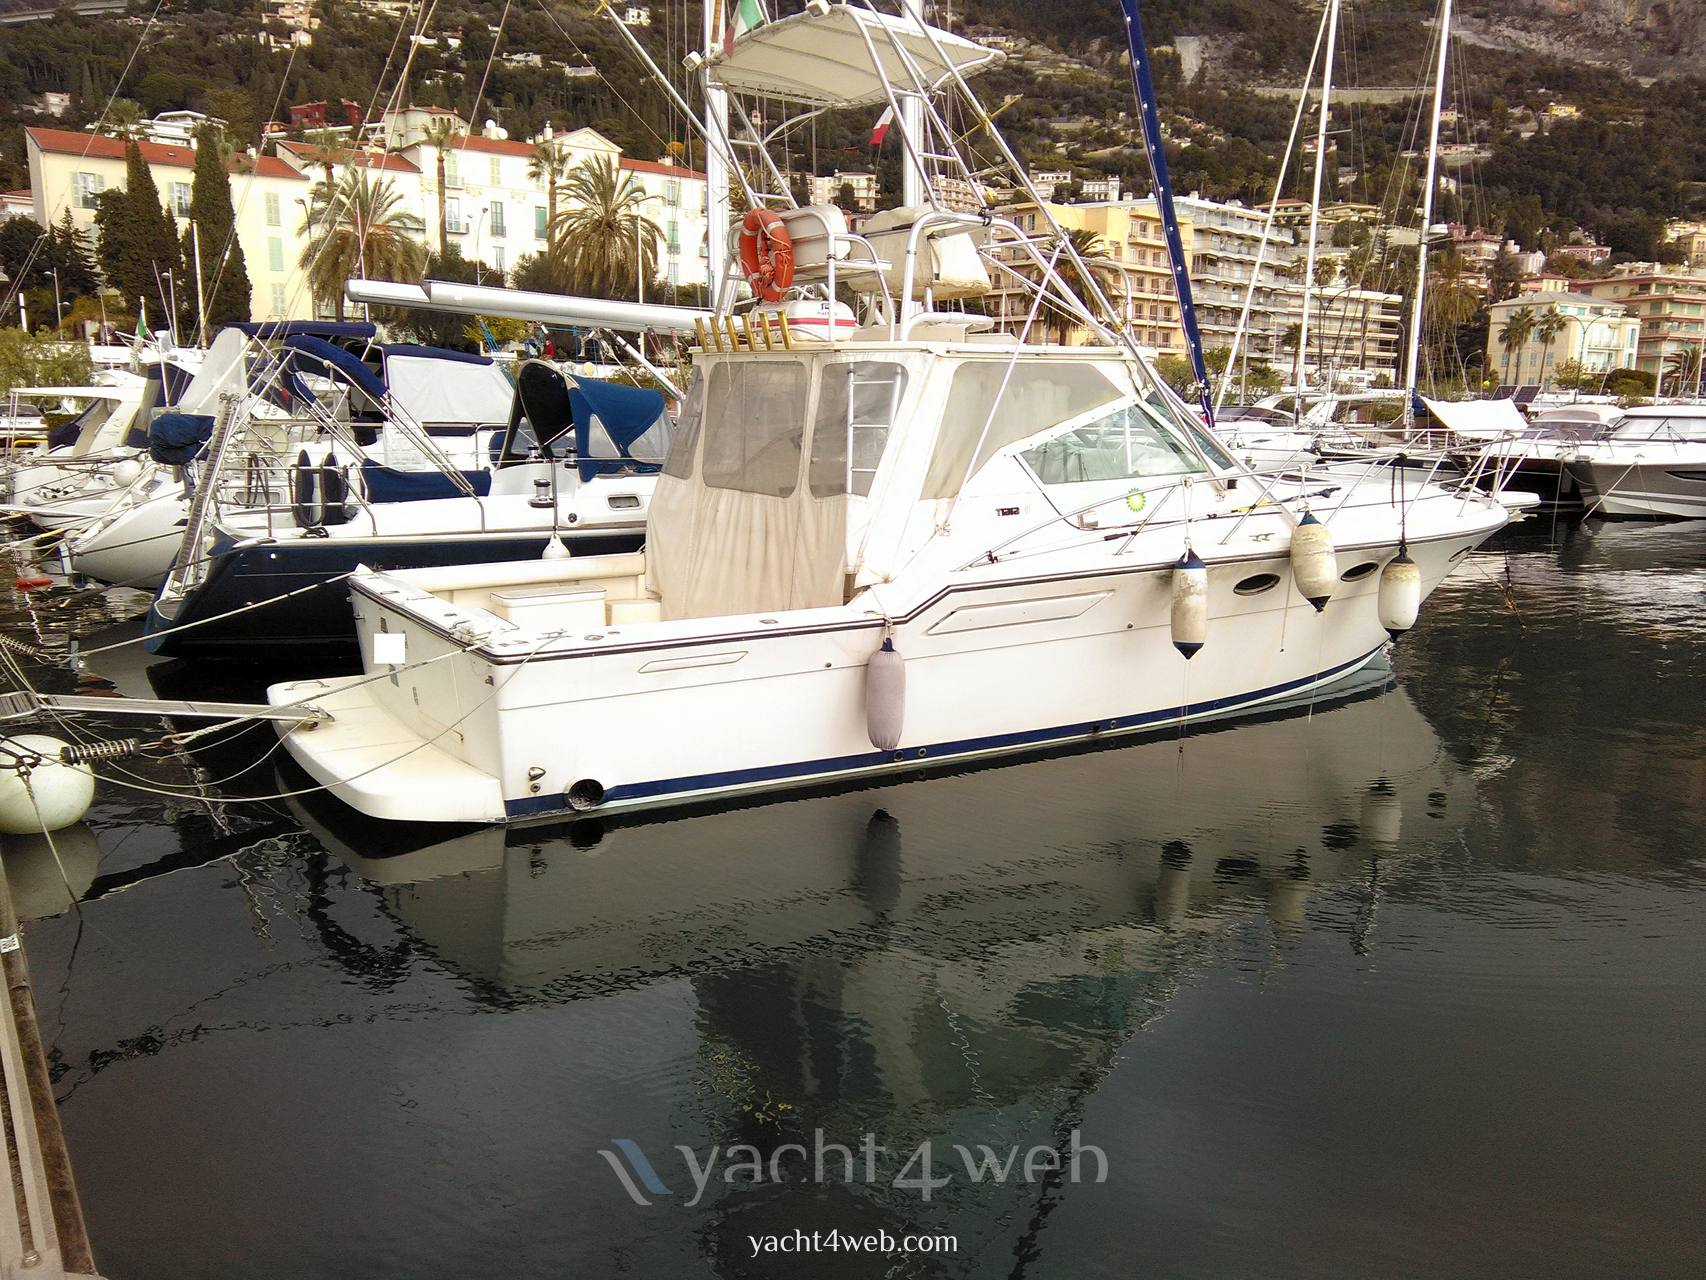 Tiara 36 express Motor boat used for sale